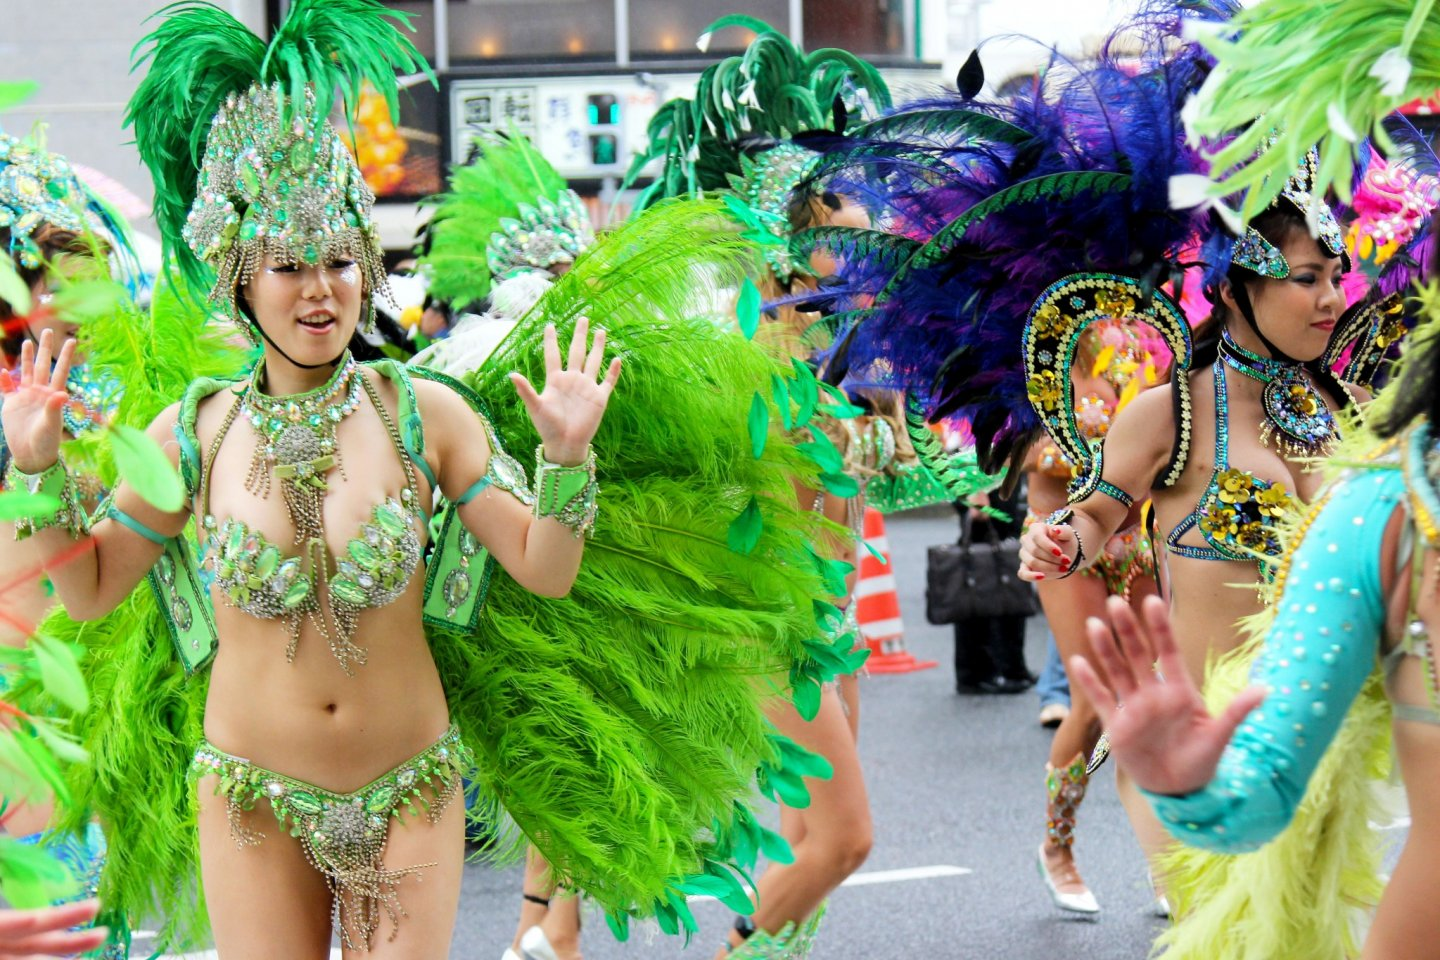 There were many gorgeous dancers wearing very traditional samba outfits.